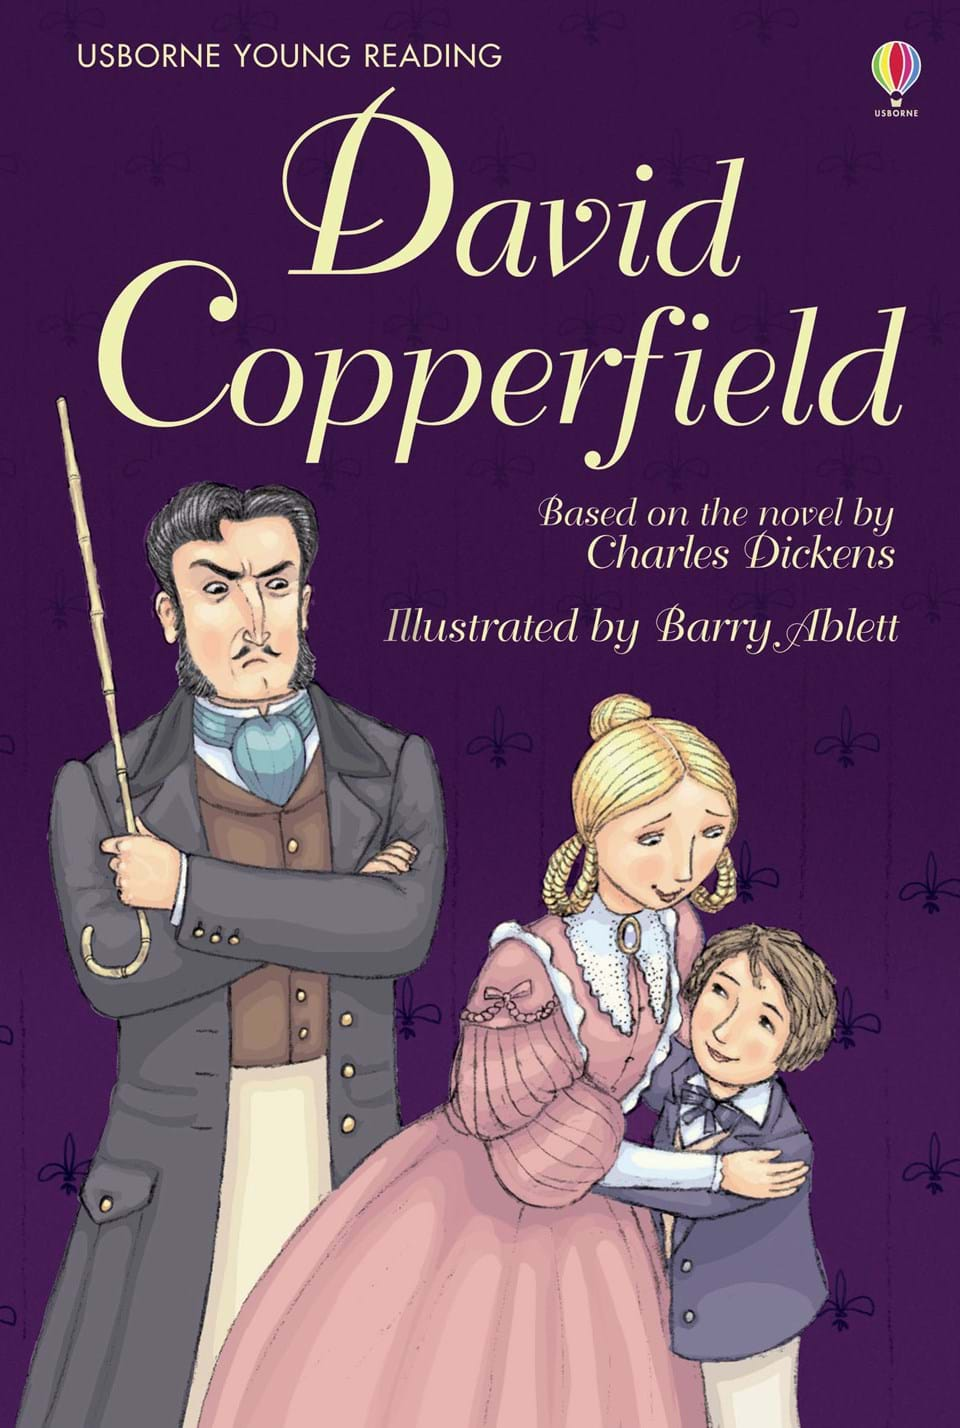 david copperfield rdquo at children s books david copperfield